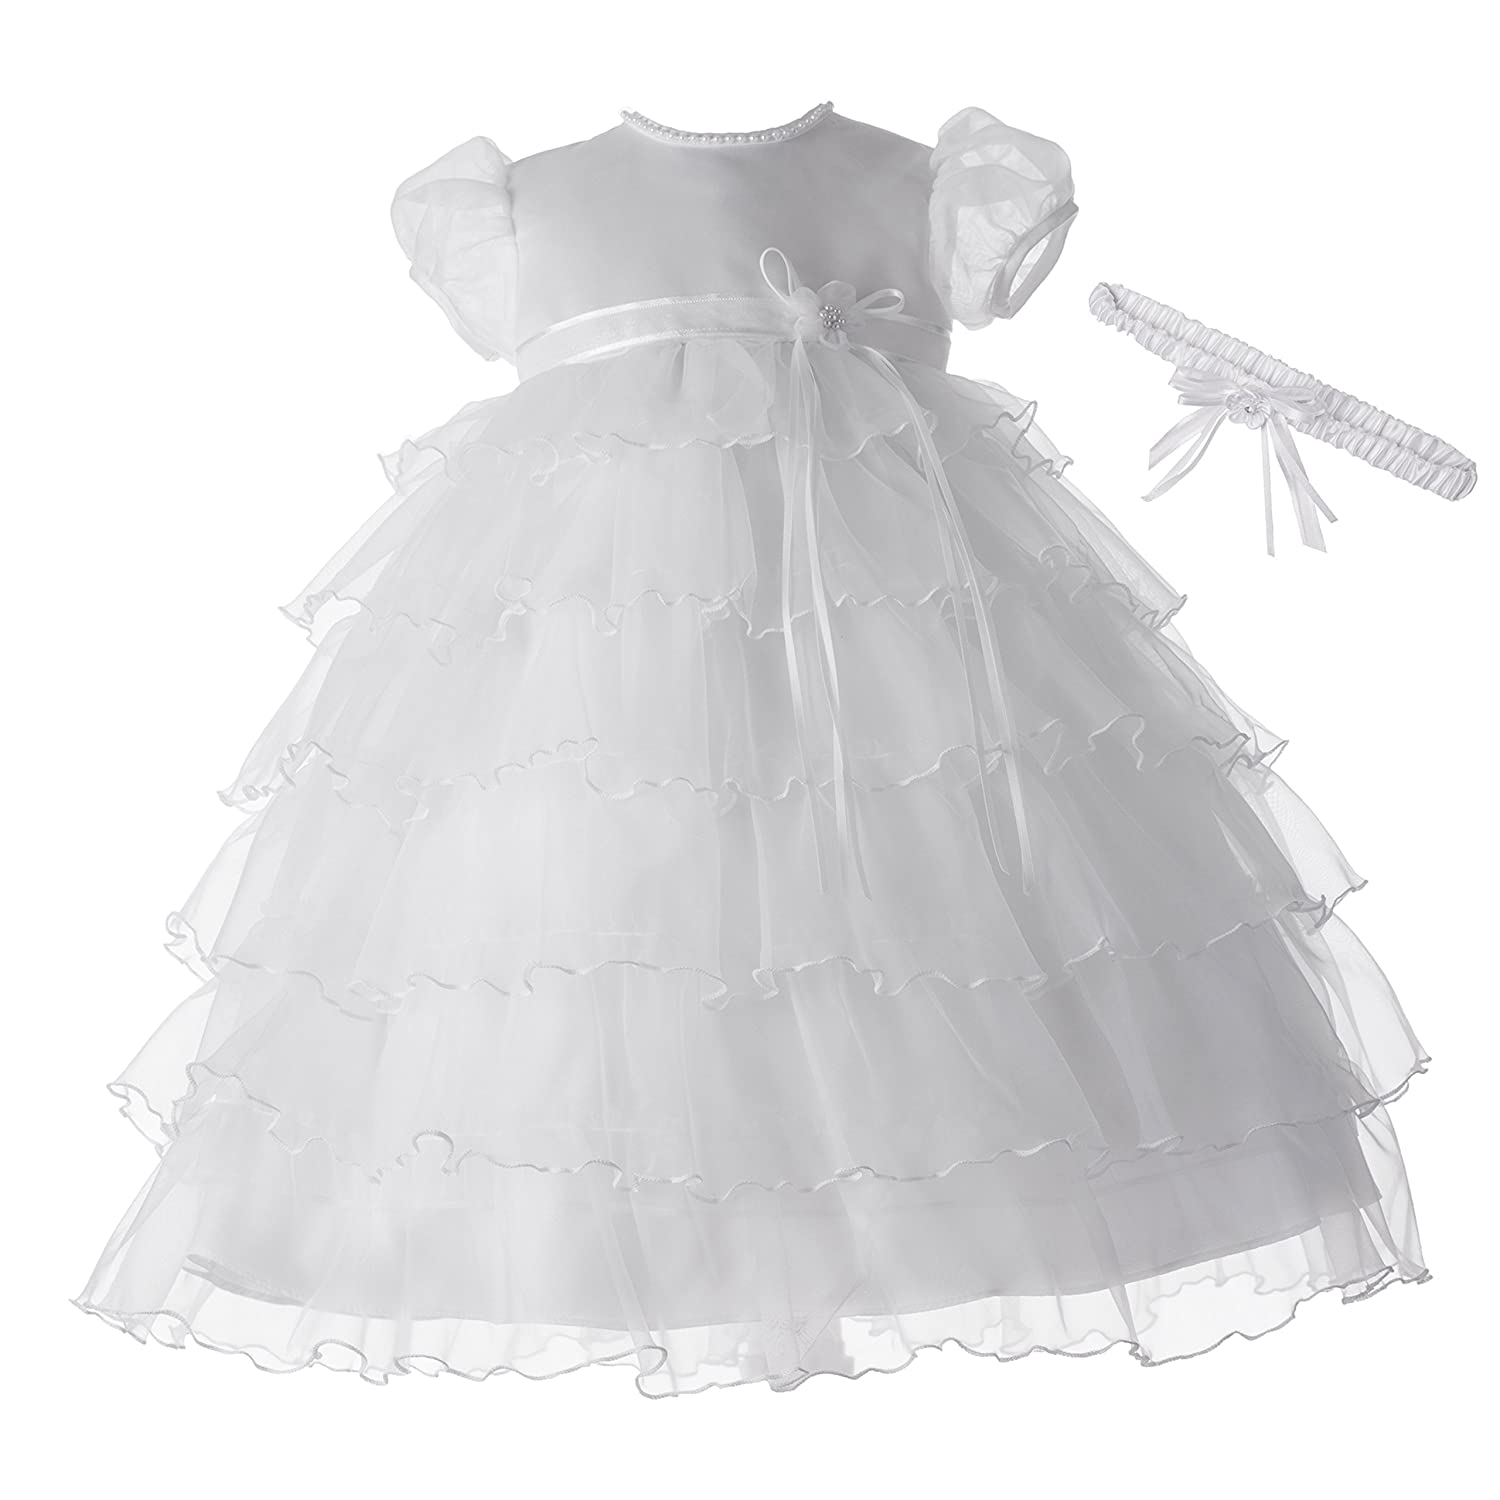 Lauren Madison baby girl Christening Baptism Multi Tiered Gown With Satin Bodice Haddad Brothers Clothing 1340